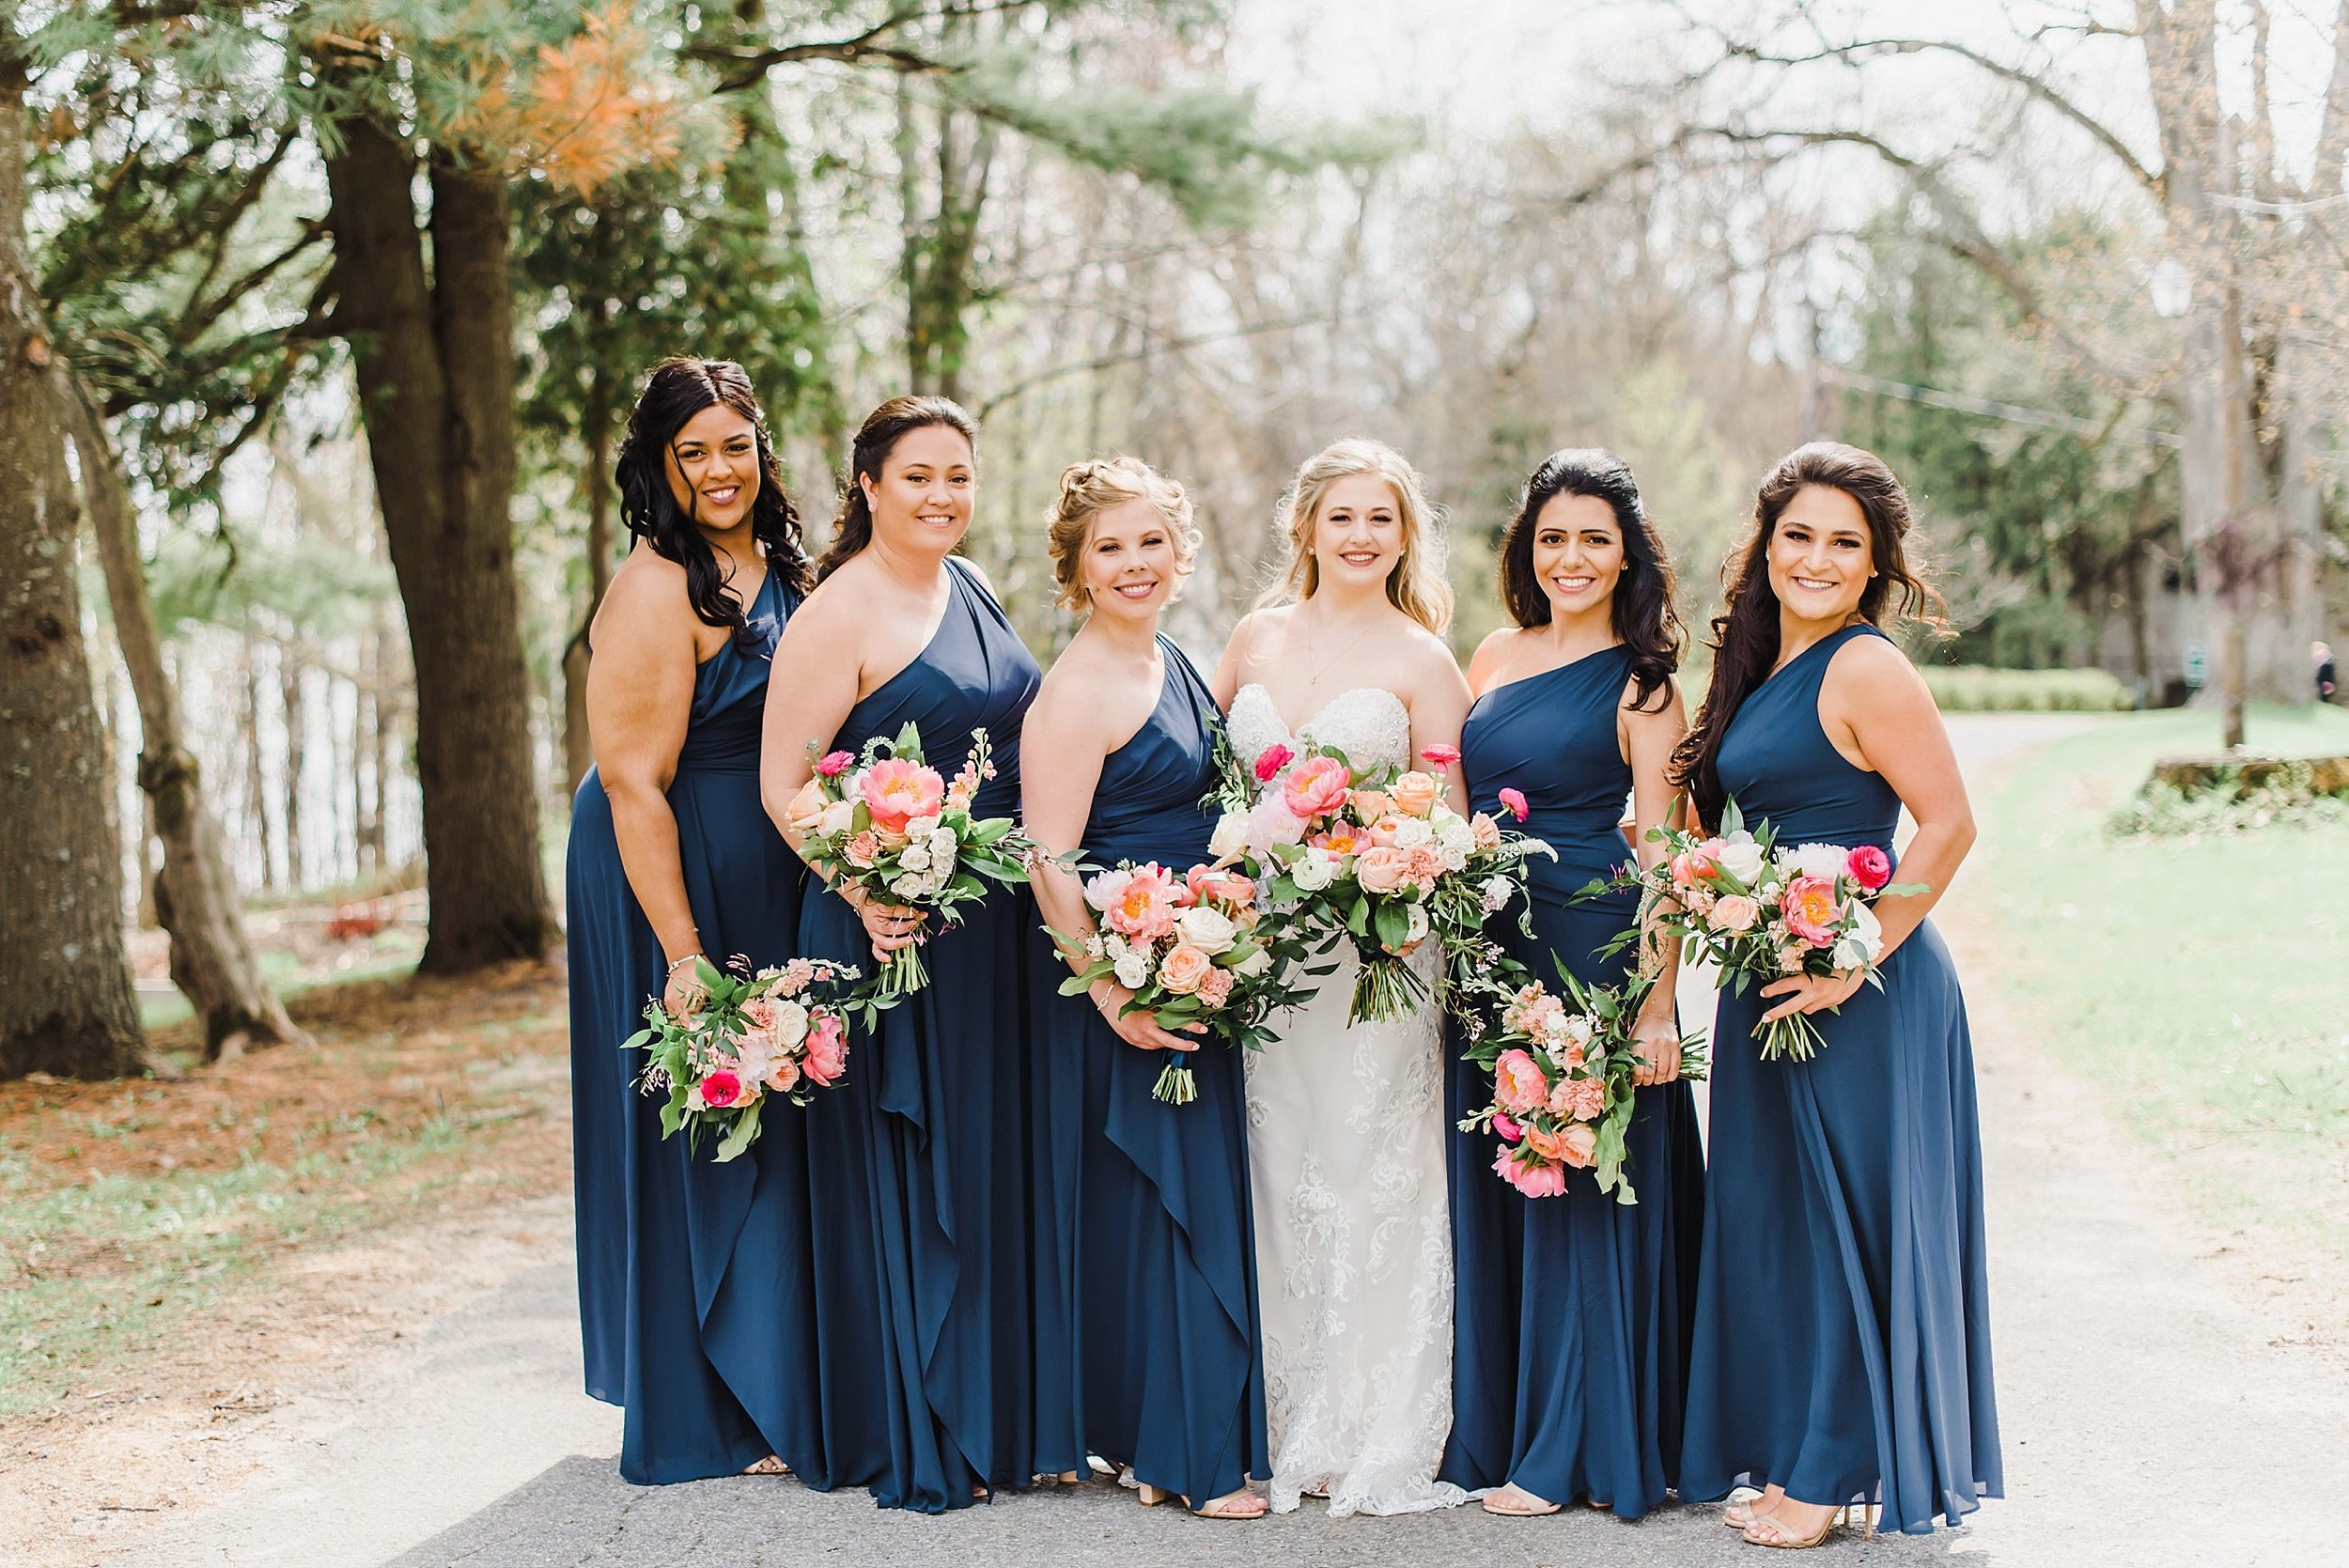 Aren't these bridesmaids the most beautiful you've ever seen!?